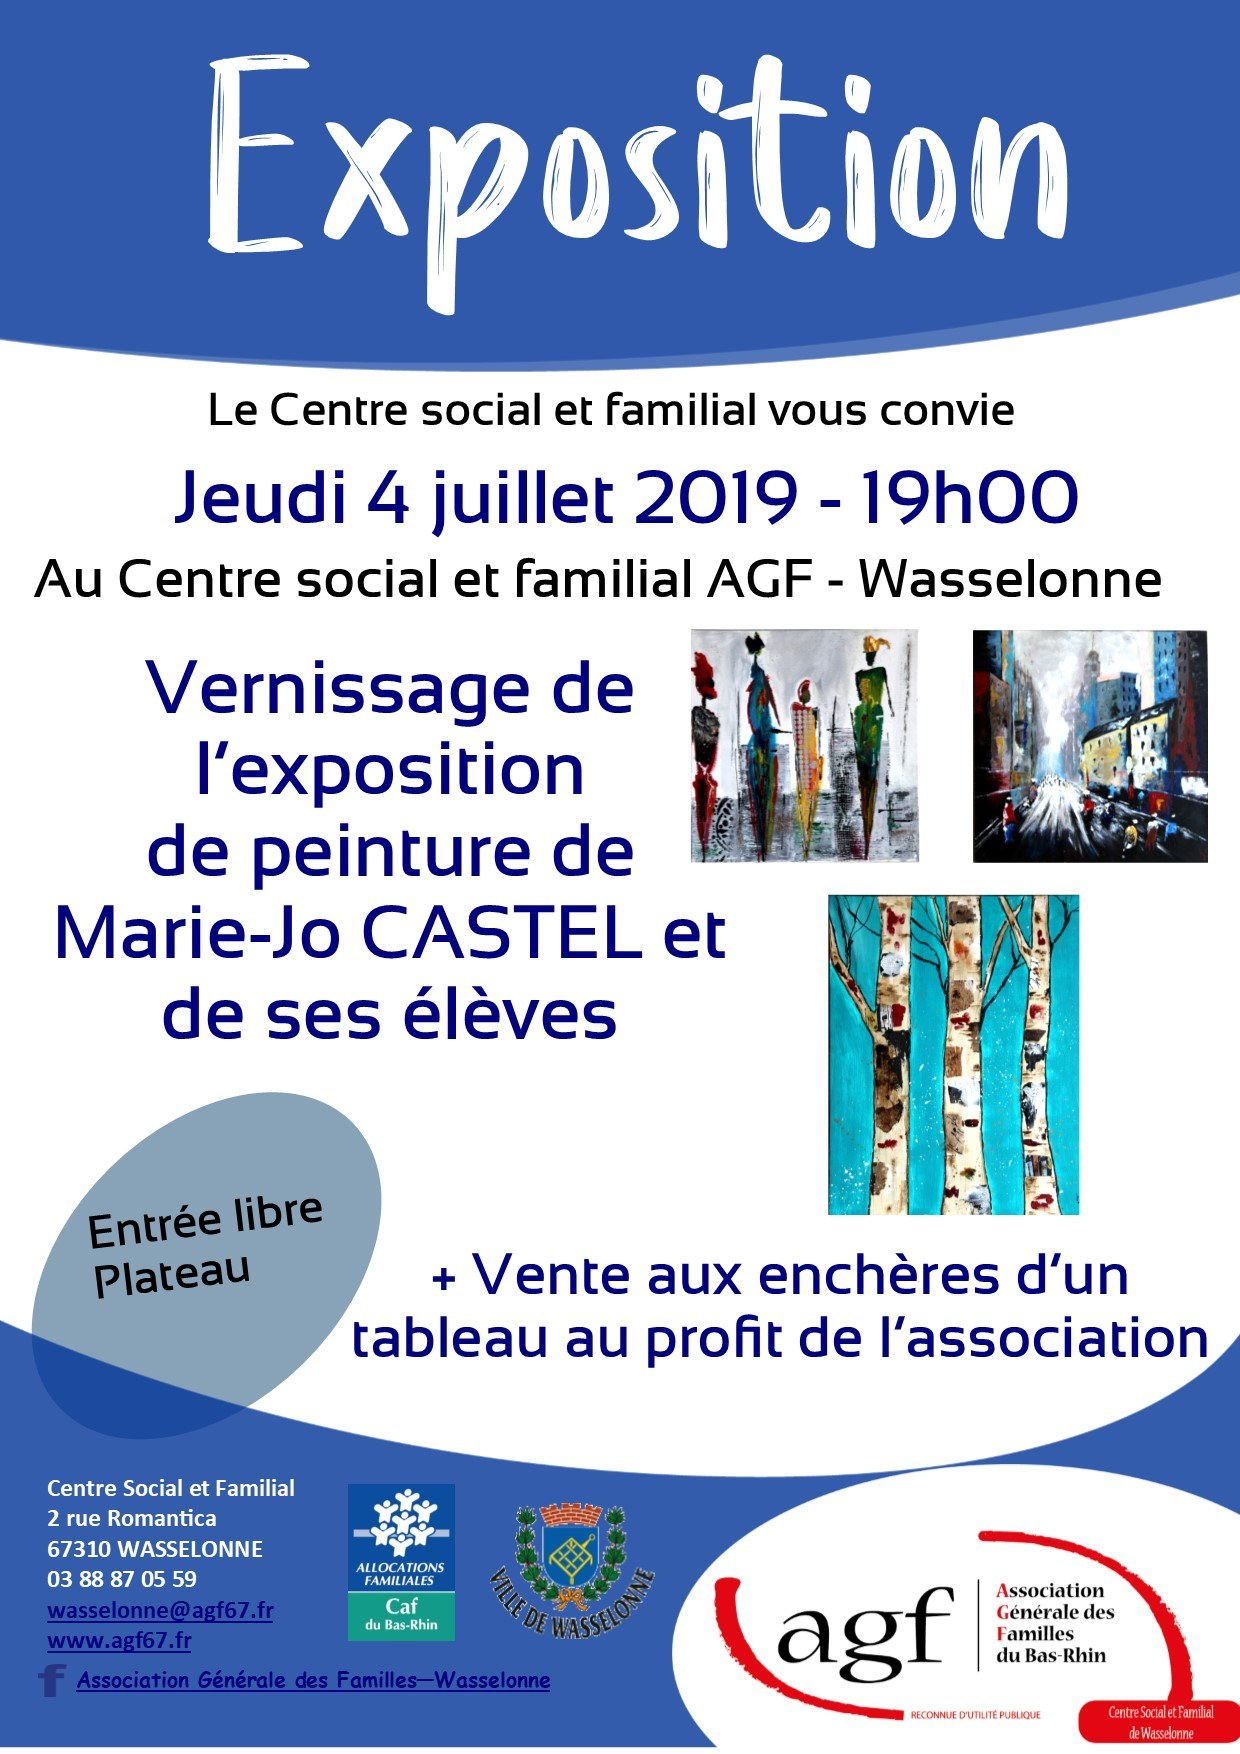 Exposition vernissage